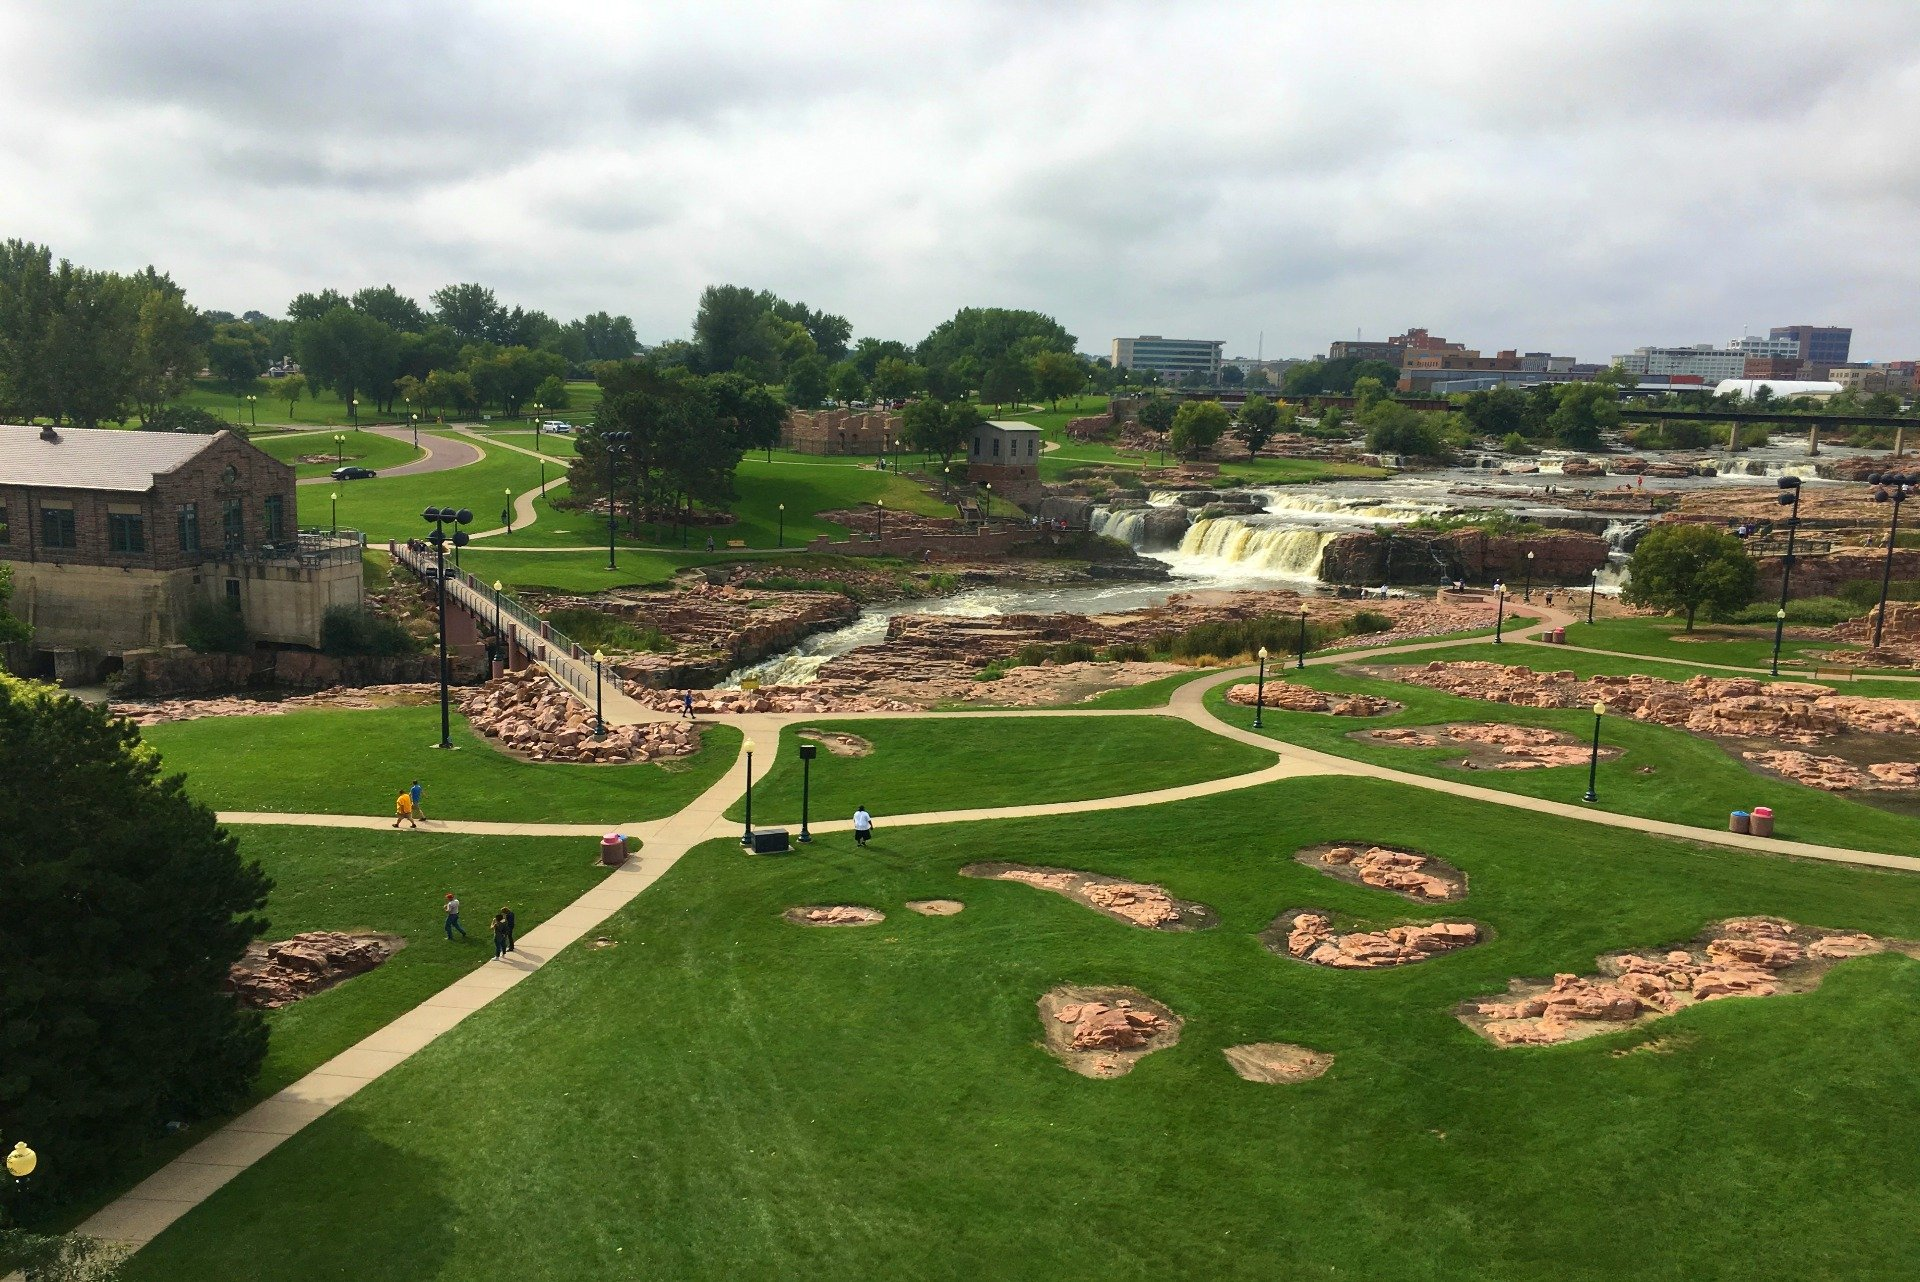 Overview of Falls Park in Sioux Falls South Dakota